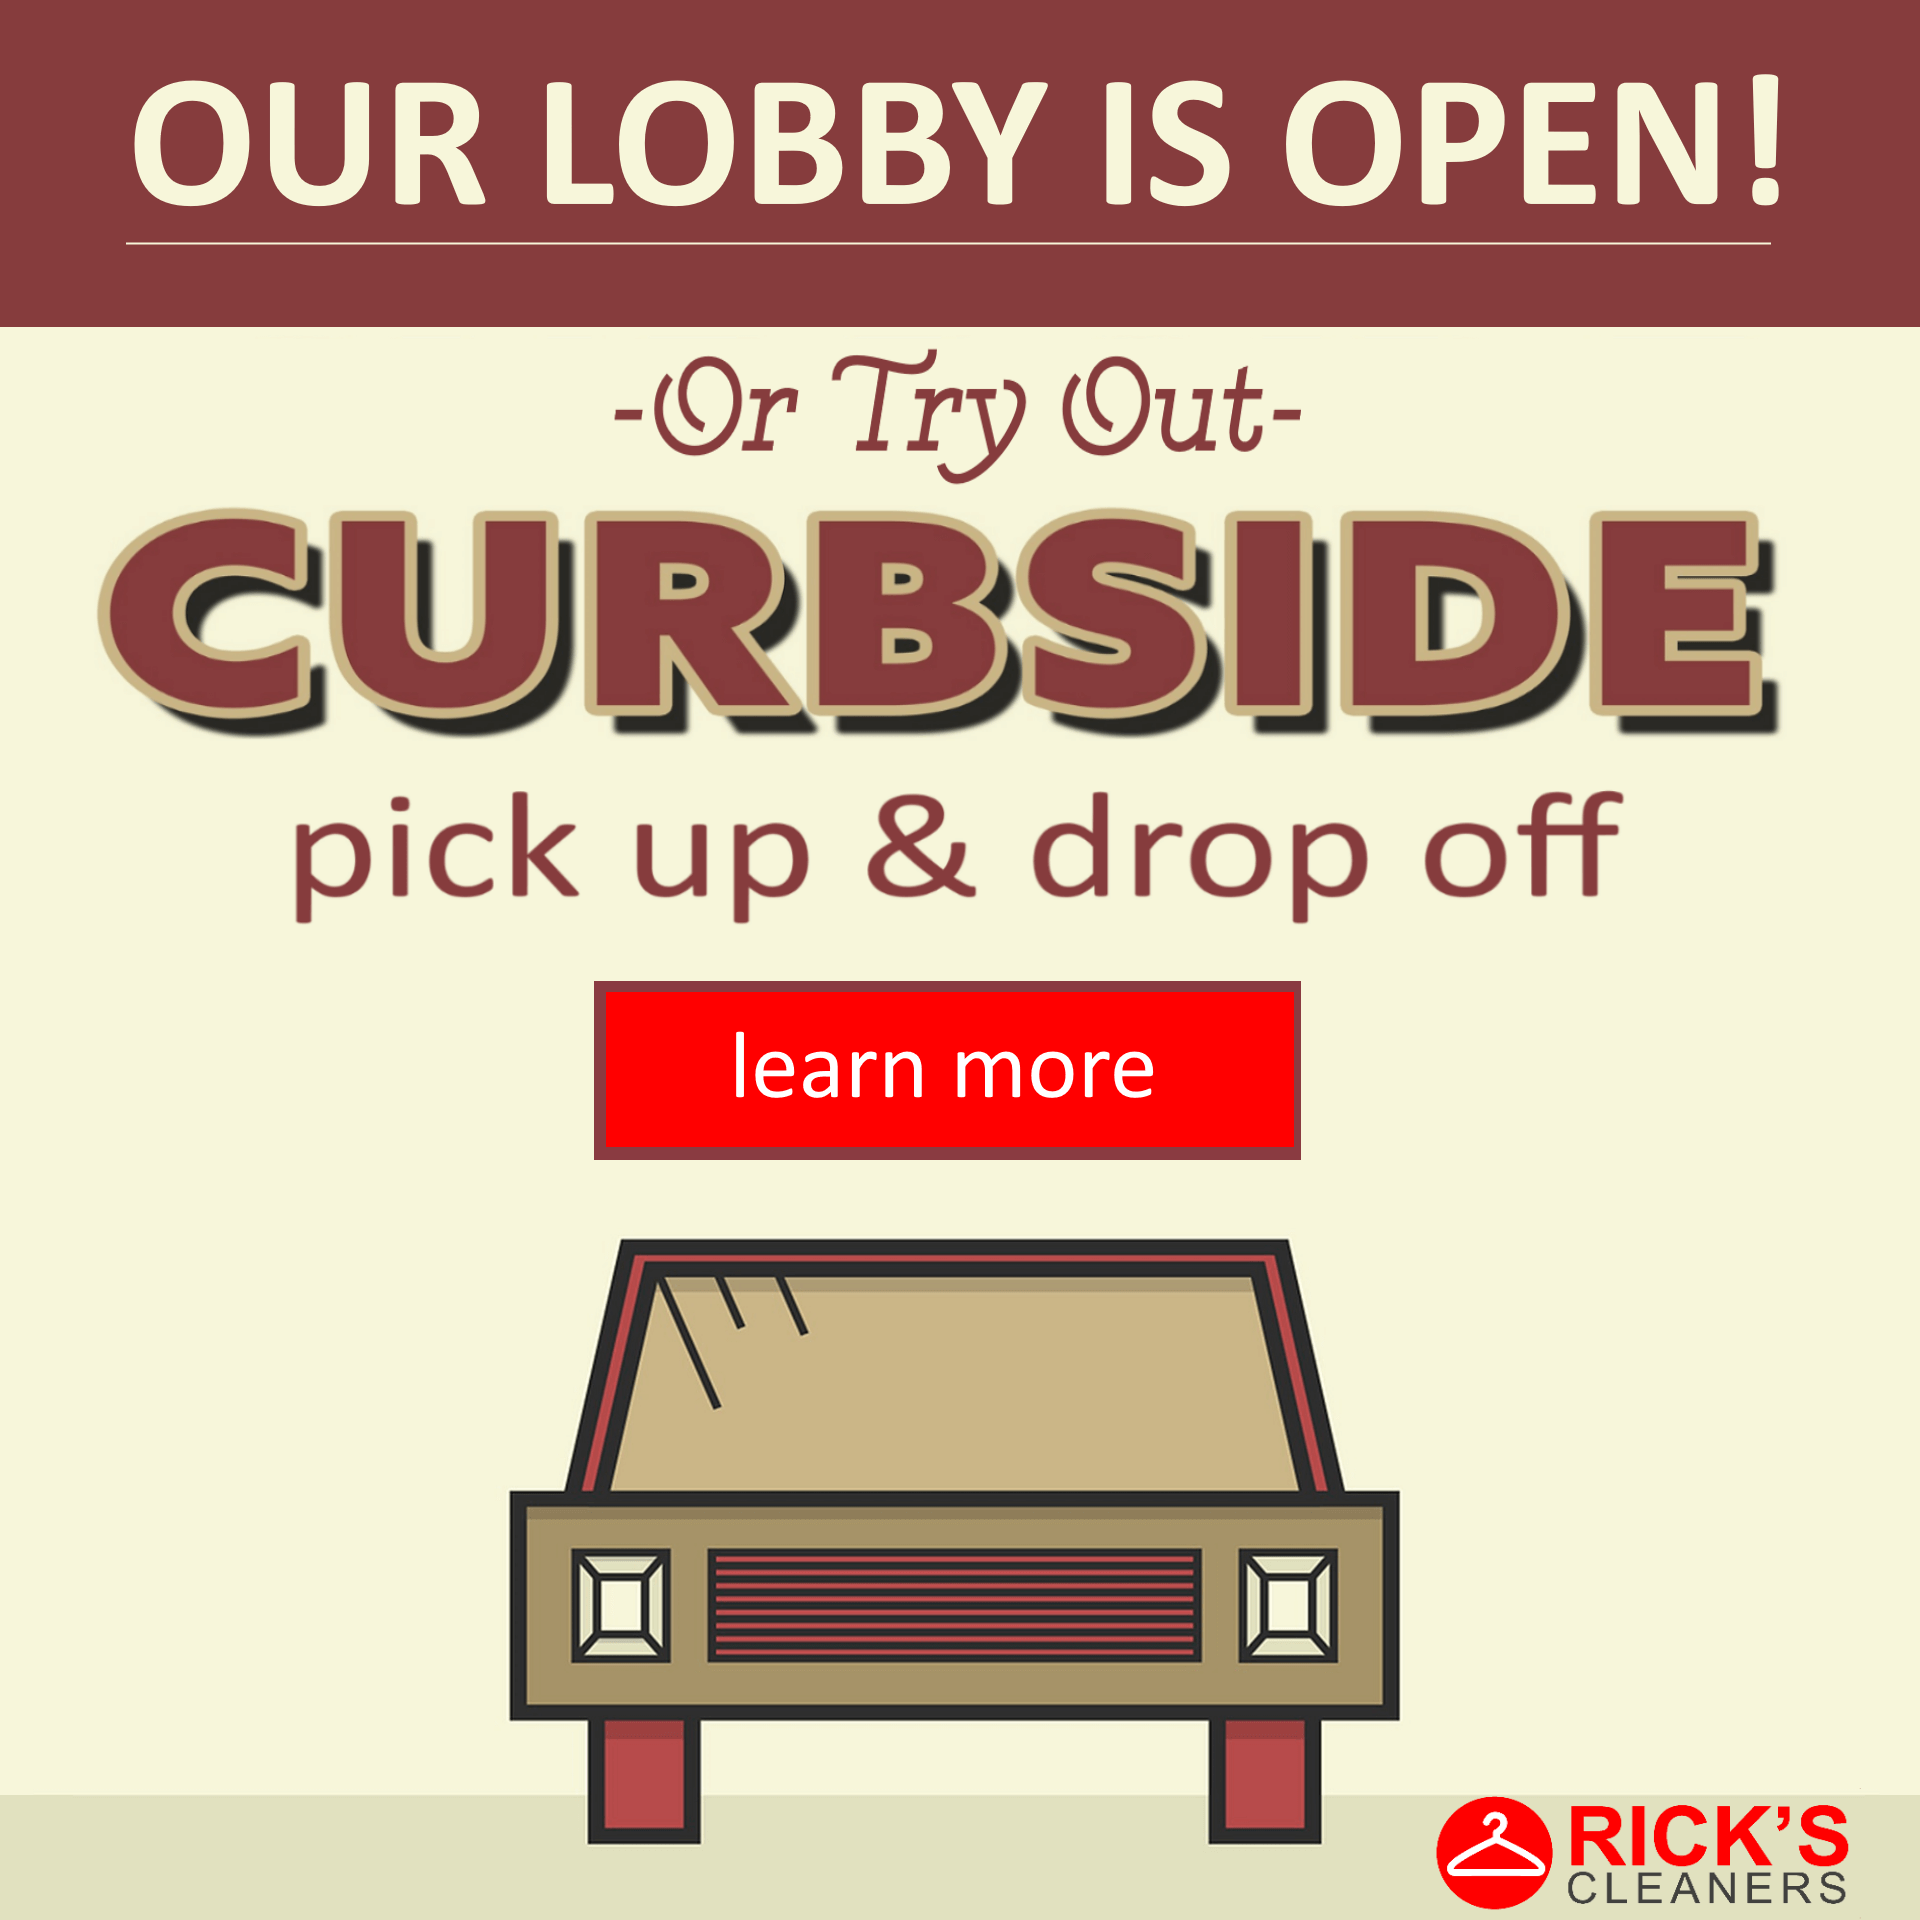 lobby open and curbside option